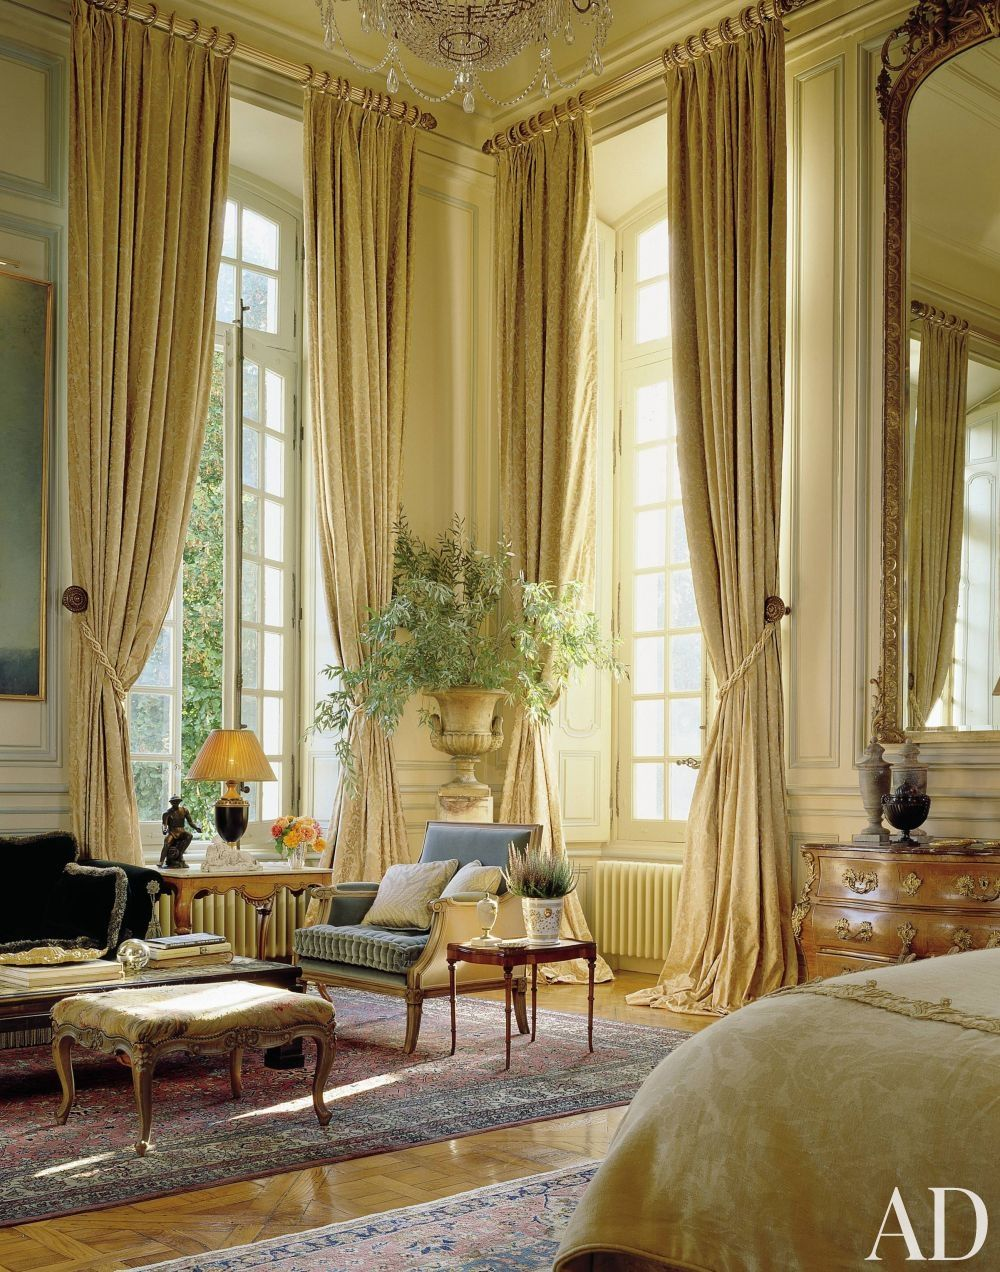 french bedroom high ceiling urn decor porvincial louis queen anne ...